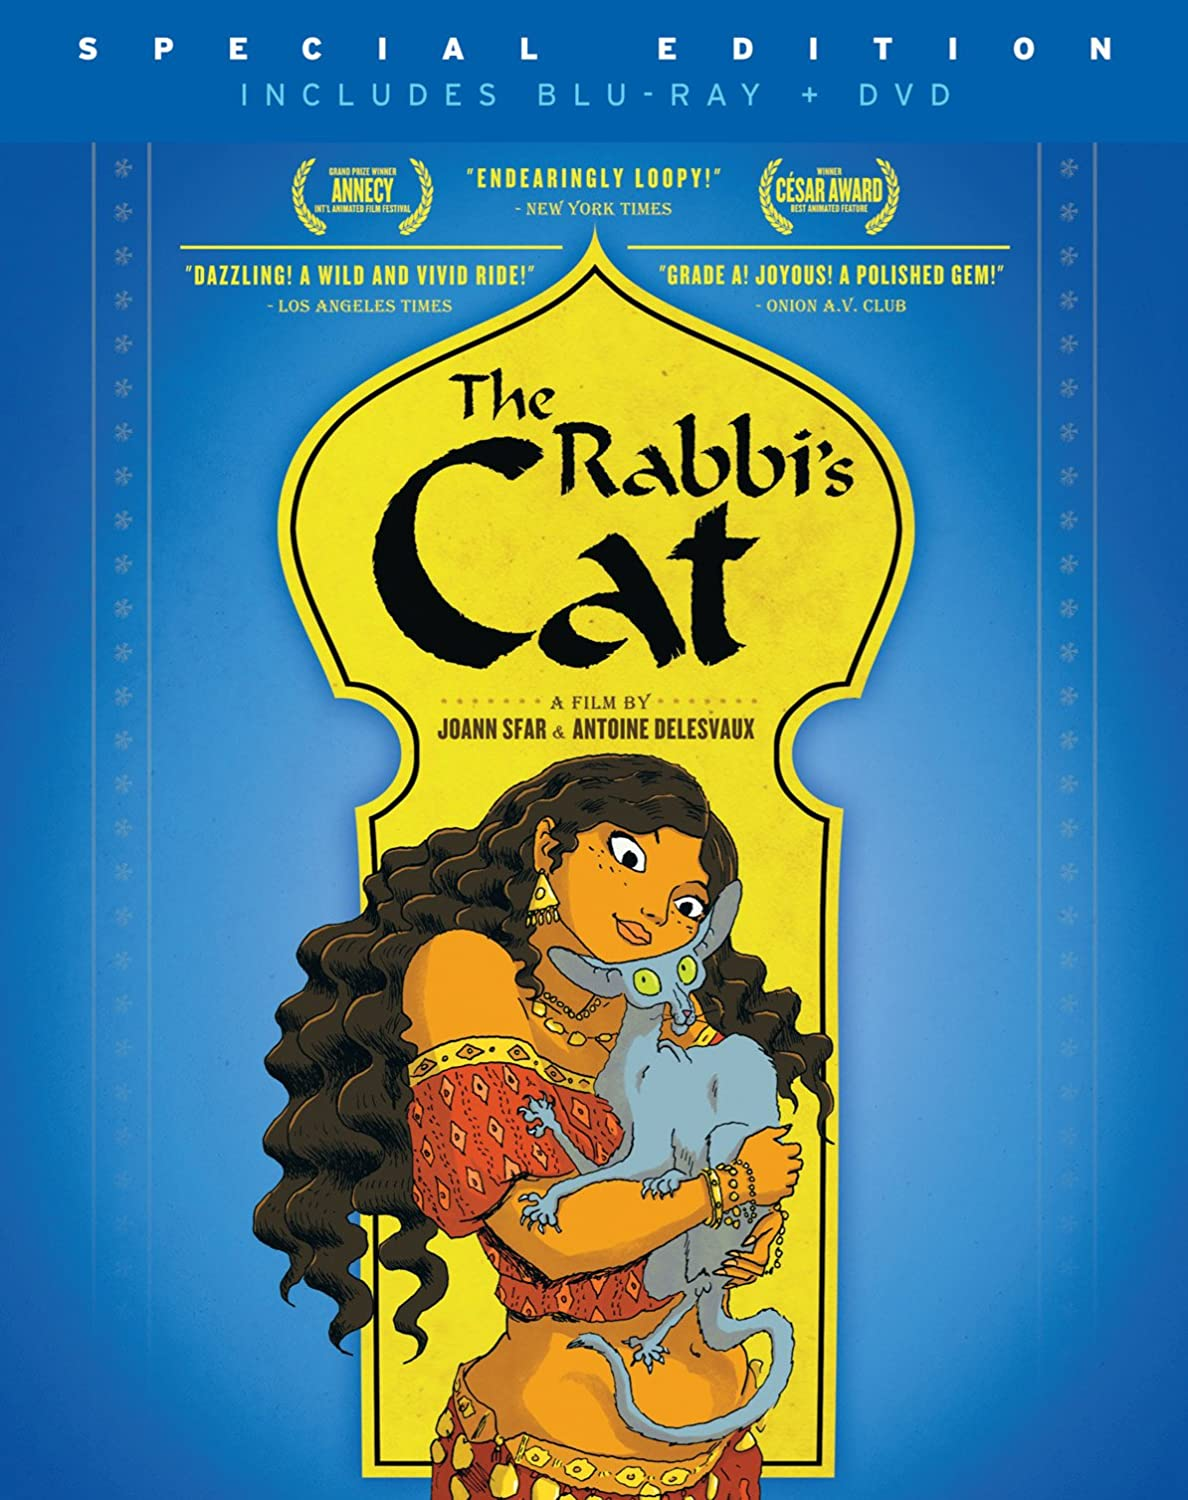 The Rabbi's Cat Blu-ray Pack and Complete Free Shipping outlet Combo DVD